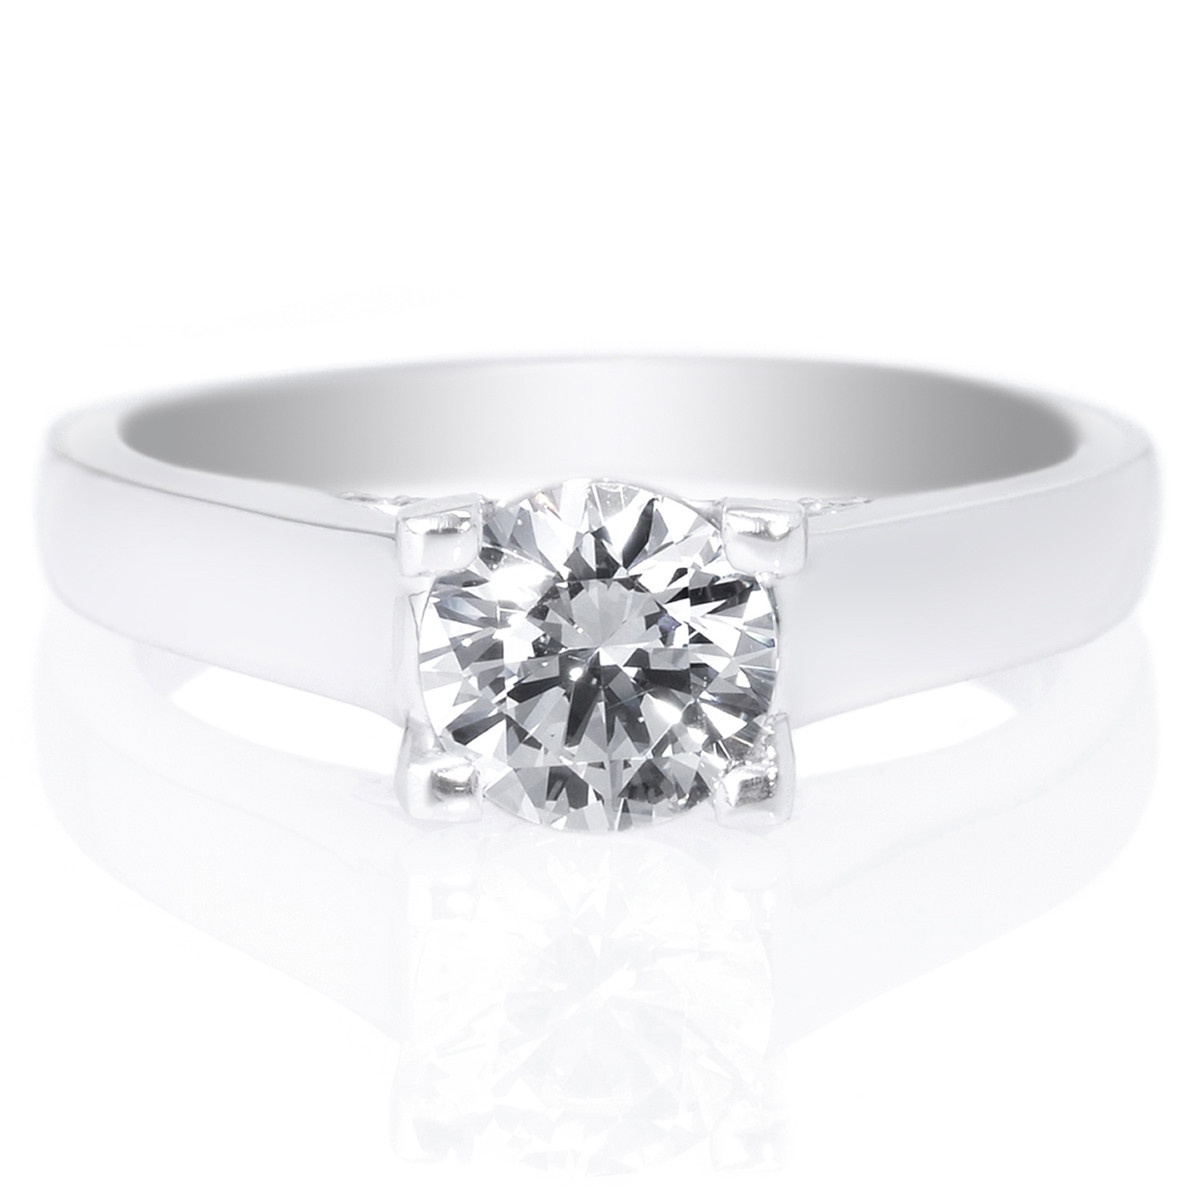 Top 5 Best Engagement Ring Settings: Wide Setting